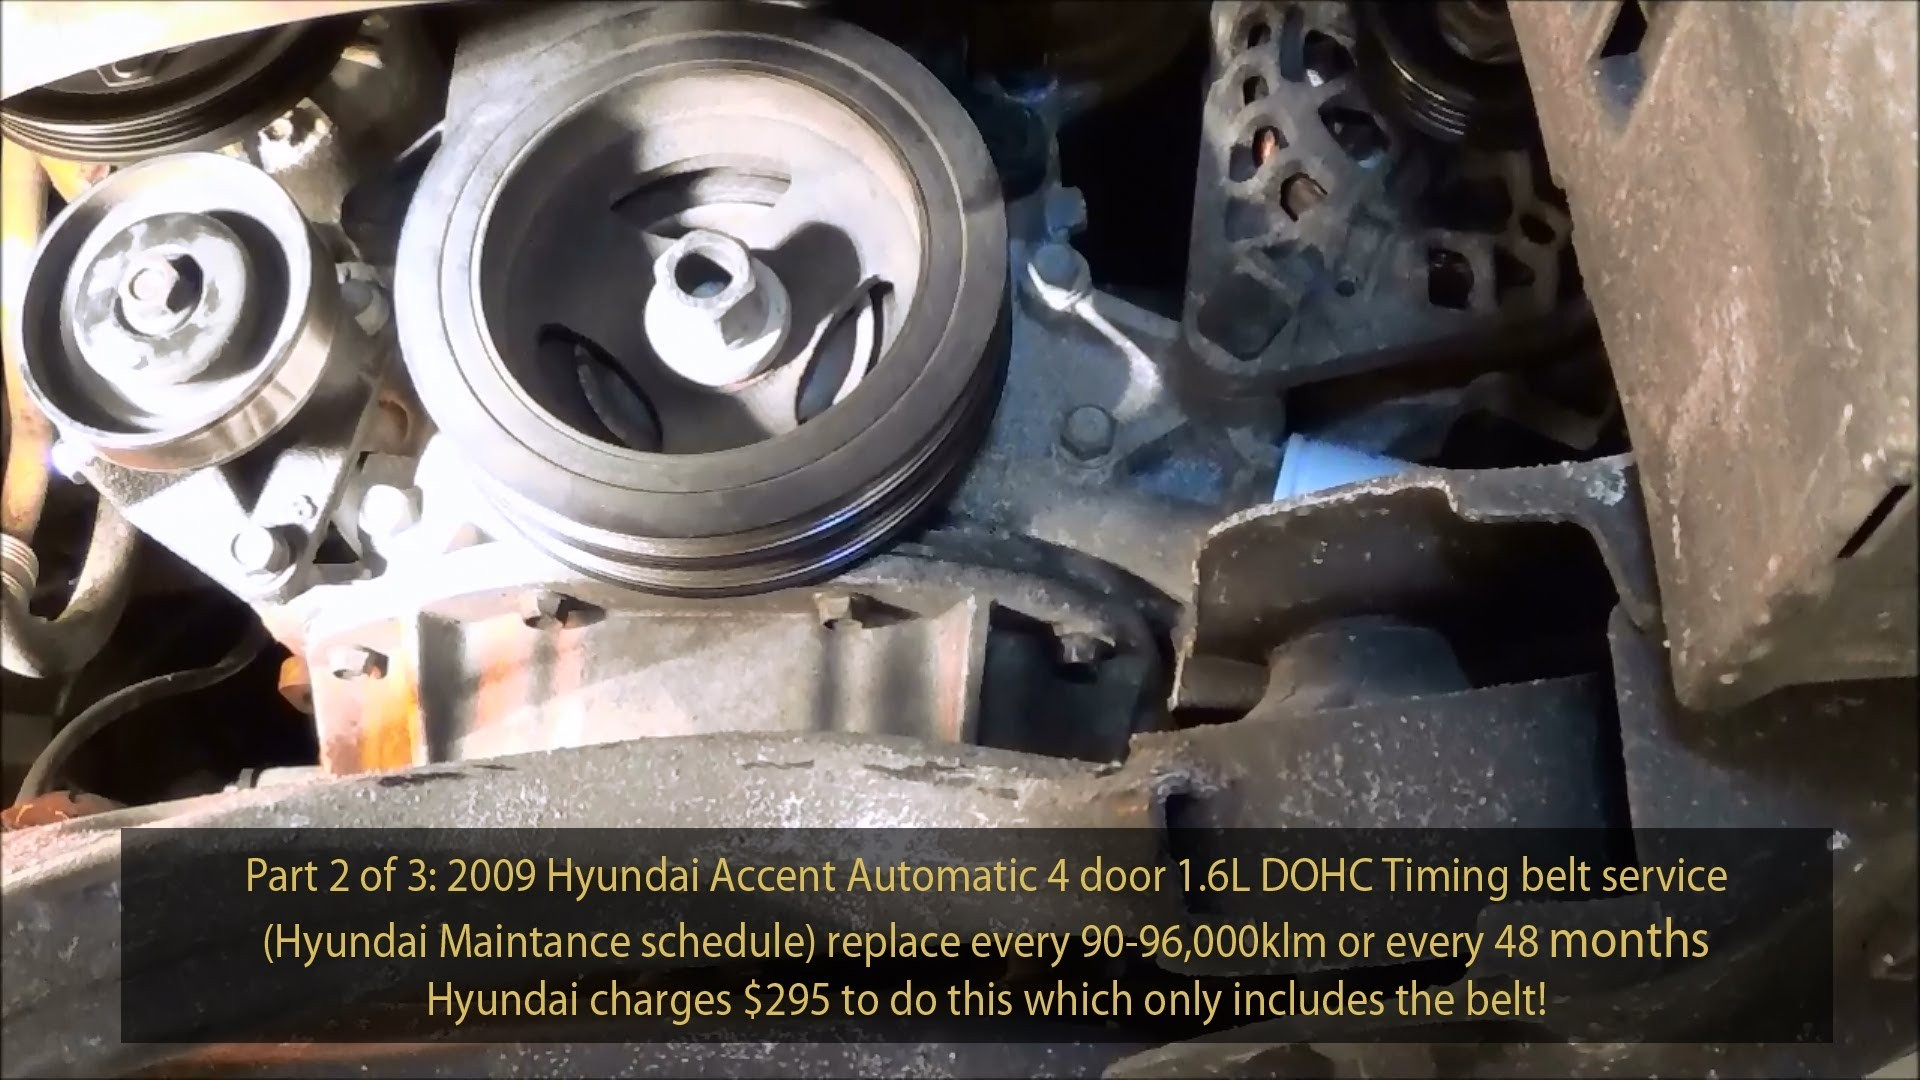 2009 Hyundai Accent Engine Diagram How To Replace A Starter On Kia Rio 1 6l Gls Dohc Timing Belt Service Part